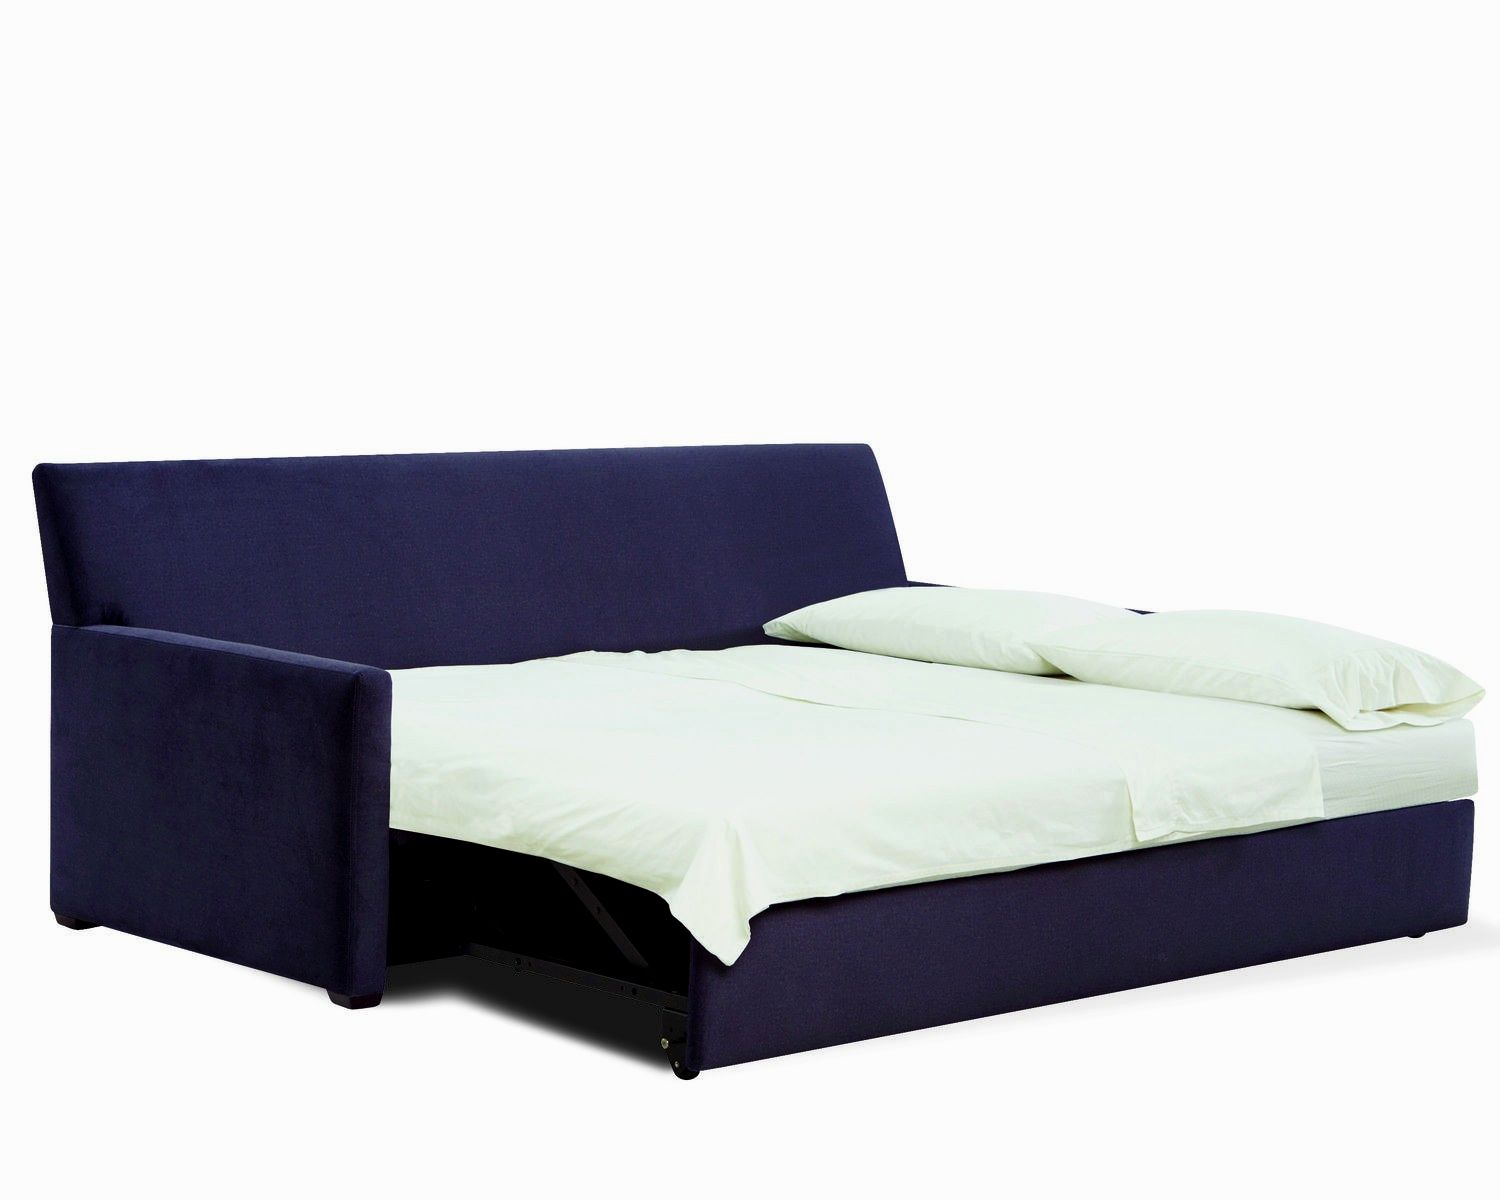 fantastic serta sleeper sofa picture-Lovely Serta Sleeper sofa Pattern